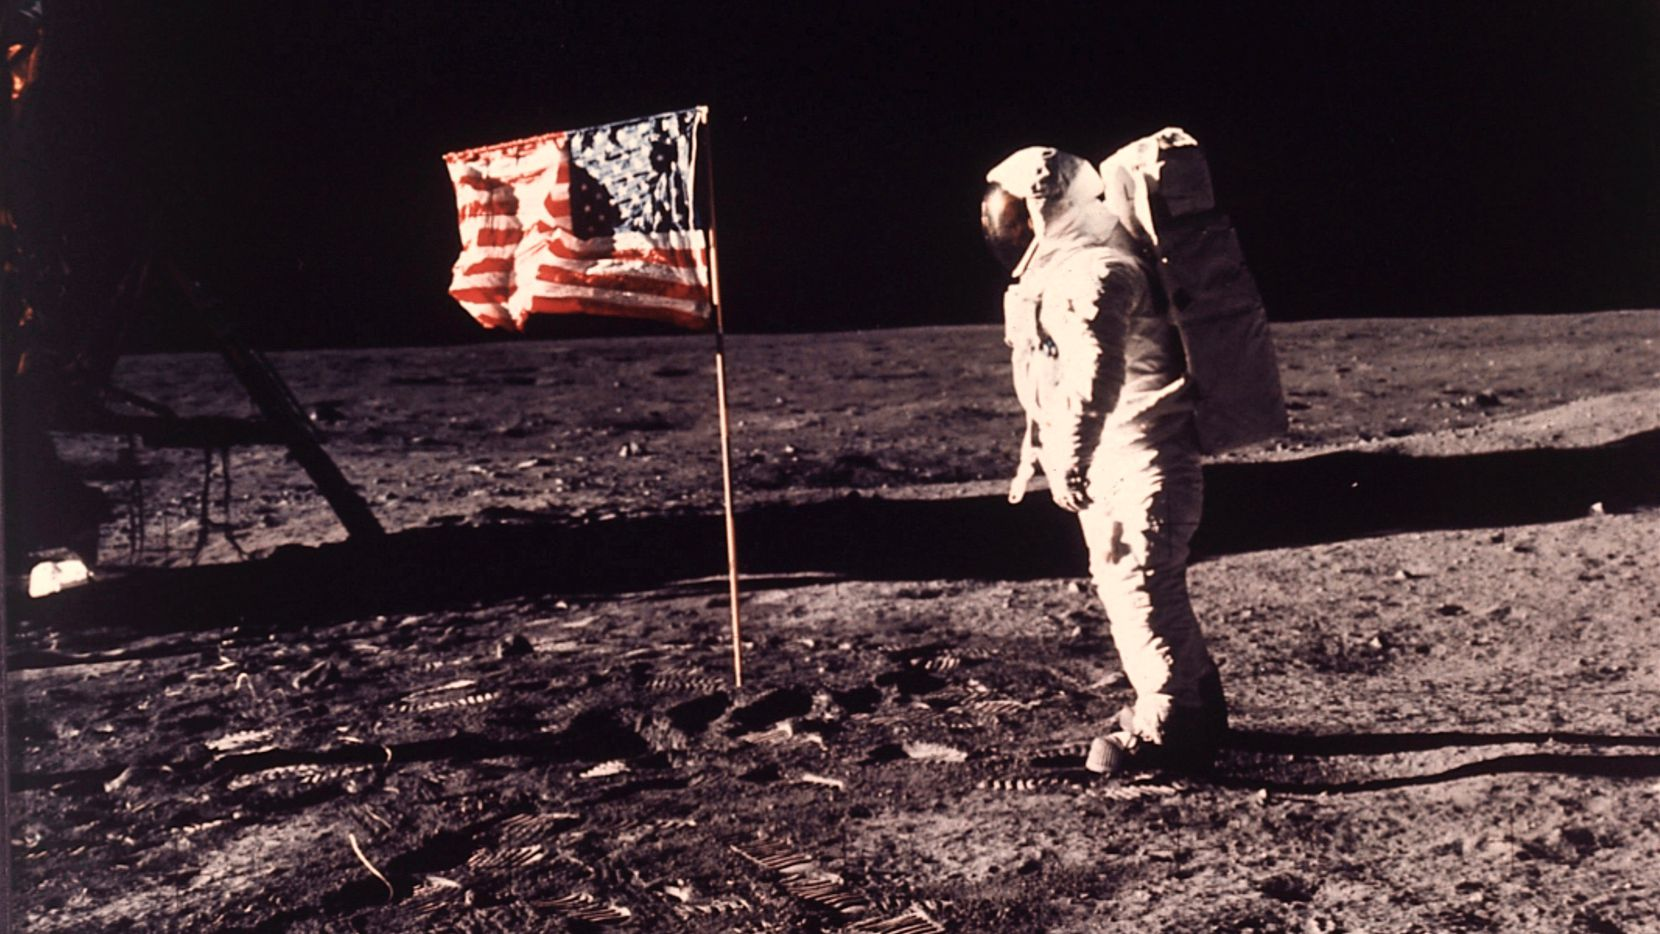 In this image provided by NASA, astronaut Buzz Aldrin poses for a photograph beside the U.S. flag deployed on the moon during the Apollo 11 mission on July 20, 1969.